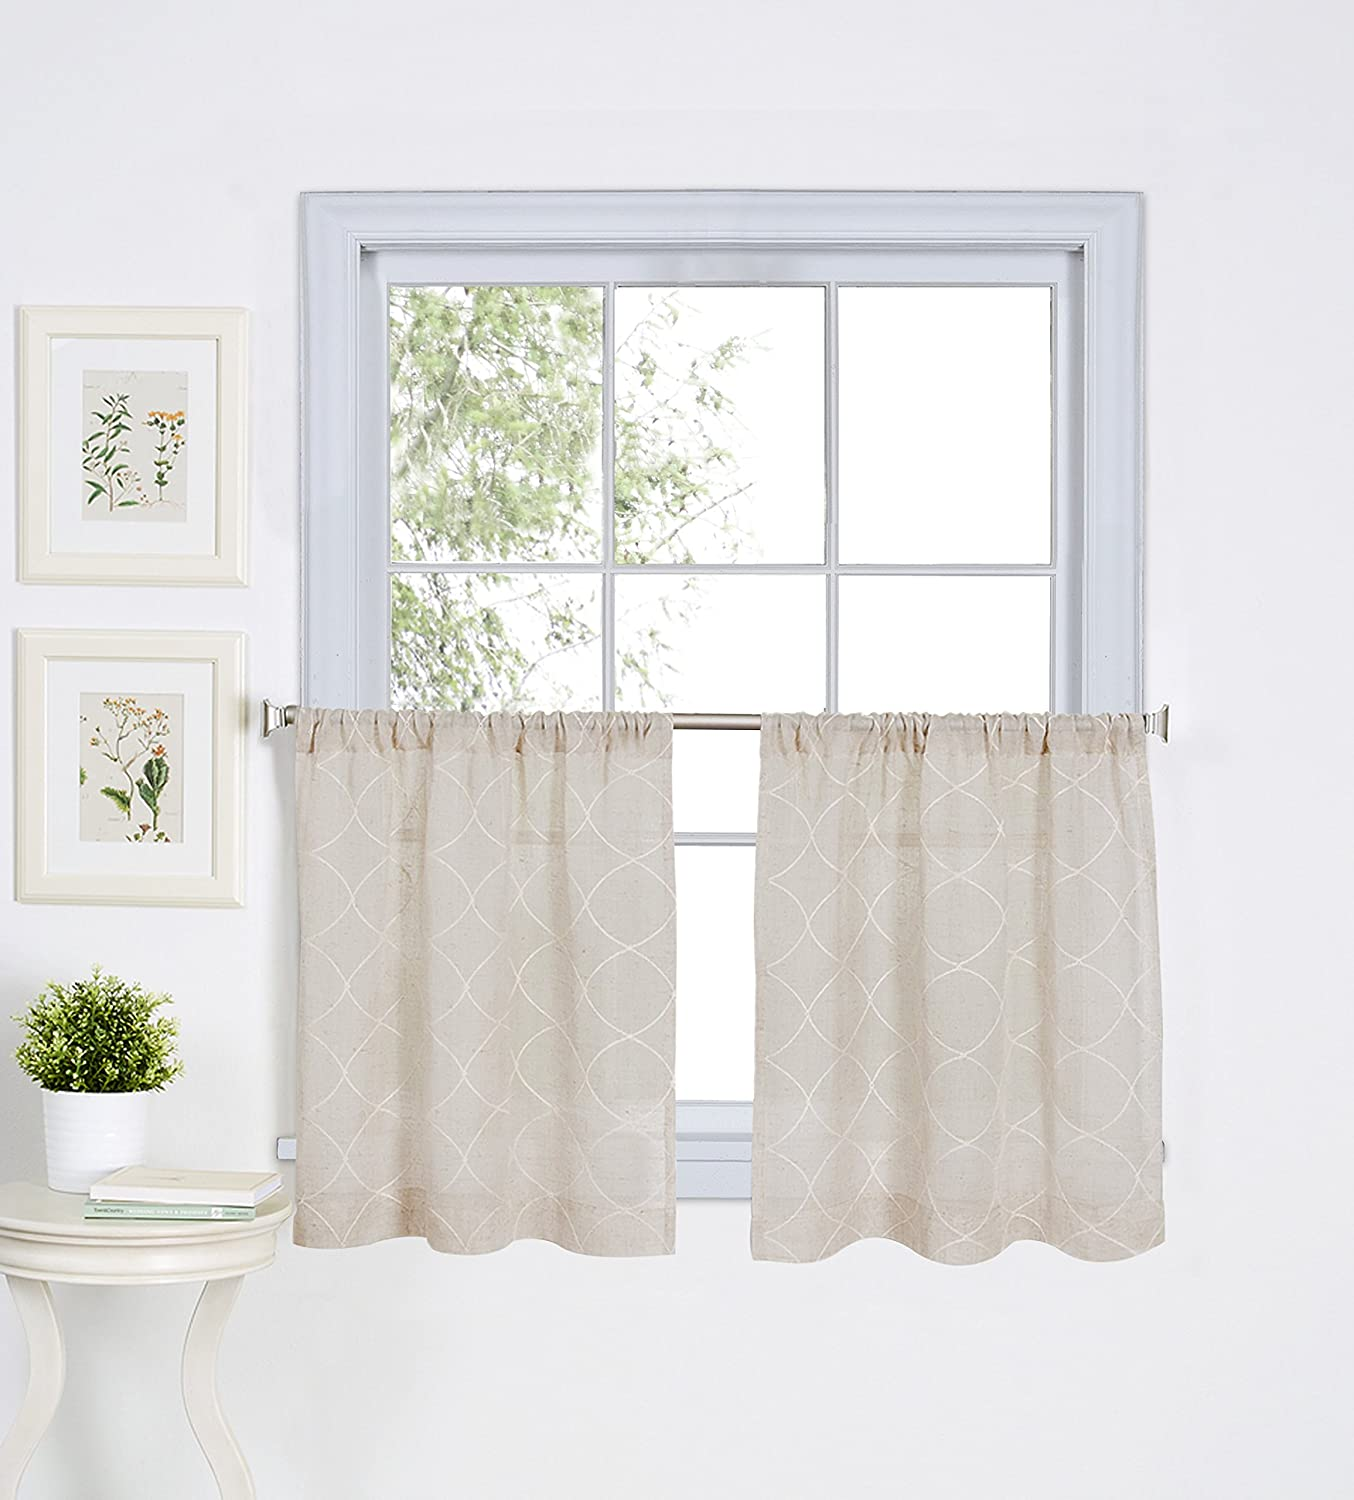 Elrene Home Fashions 026865775174 Embroidered Rod Pocket Kitchen/Cafe Tier Window Curtain, Set of 2, 30 x 24, Linen 30 x 24